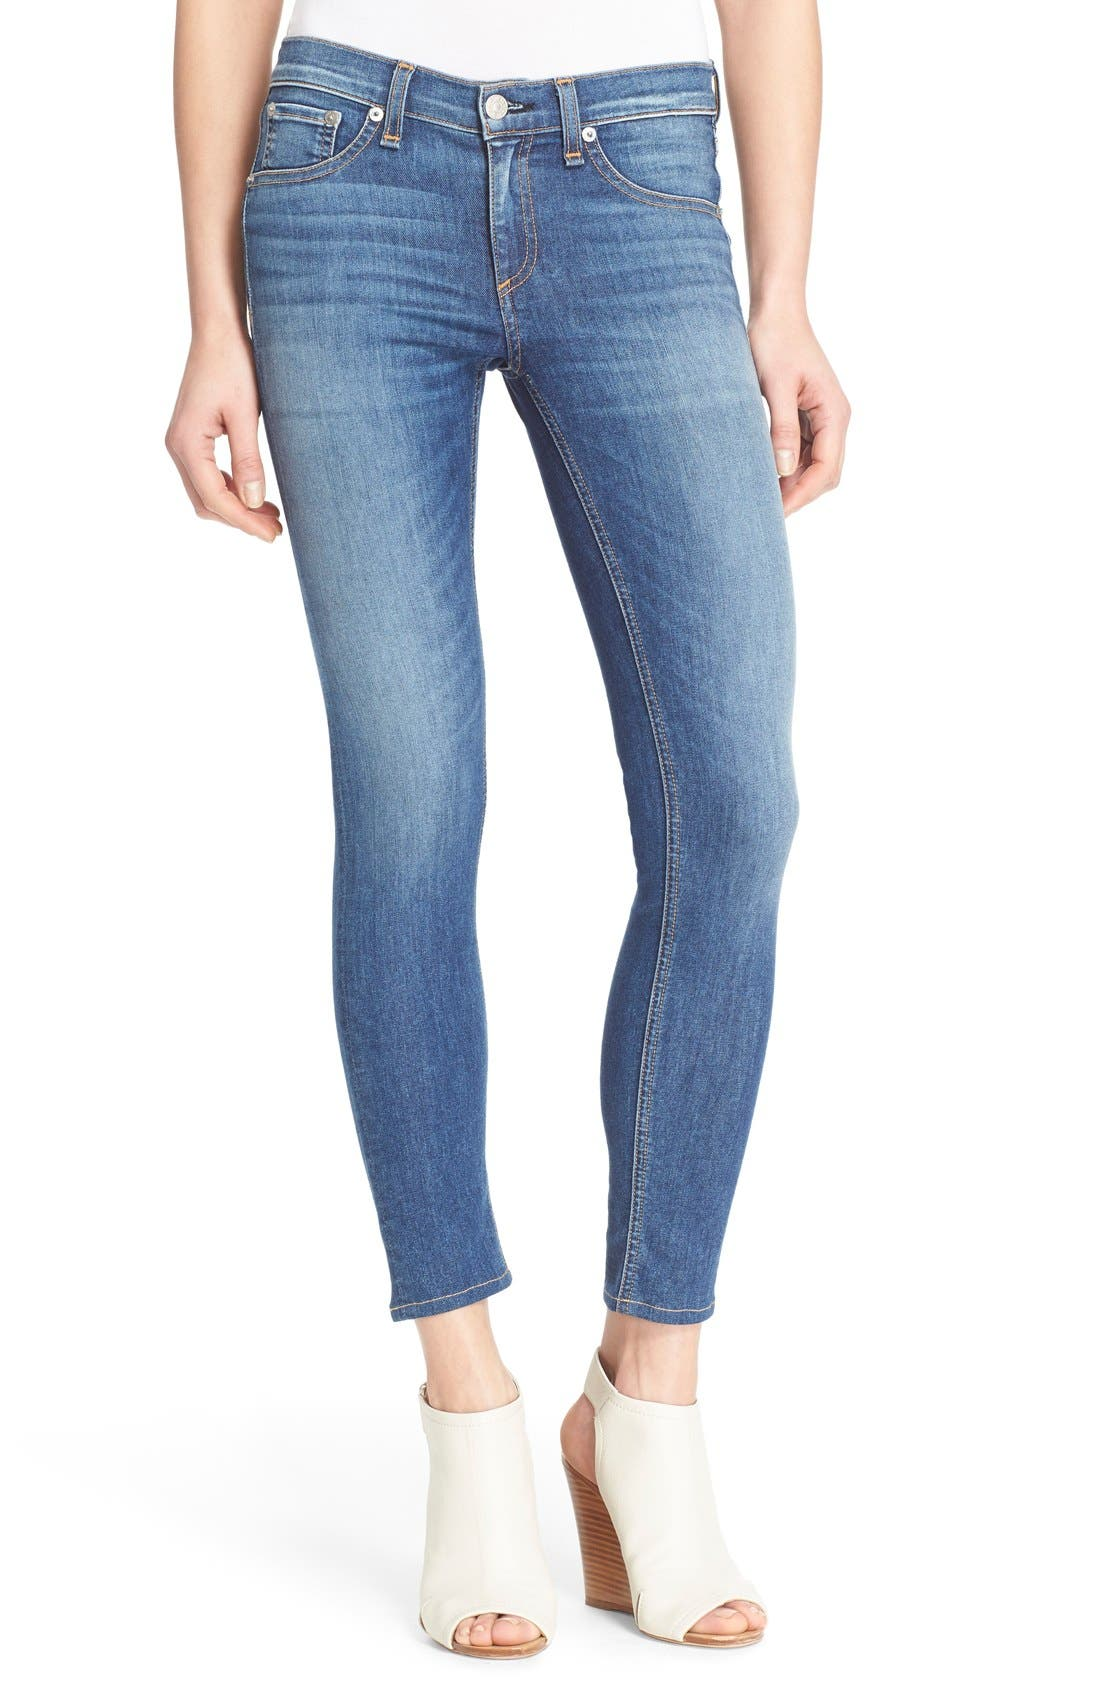 RAG & BONE, Capri Crop Skinny Jeans, Main thumbnail 1, color, RAE